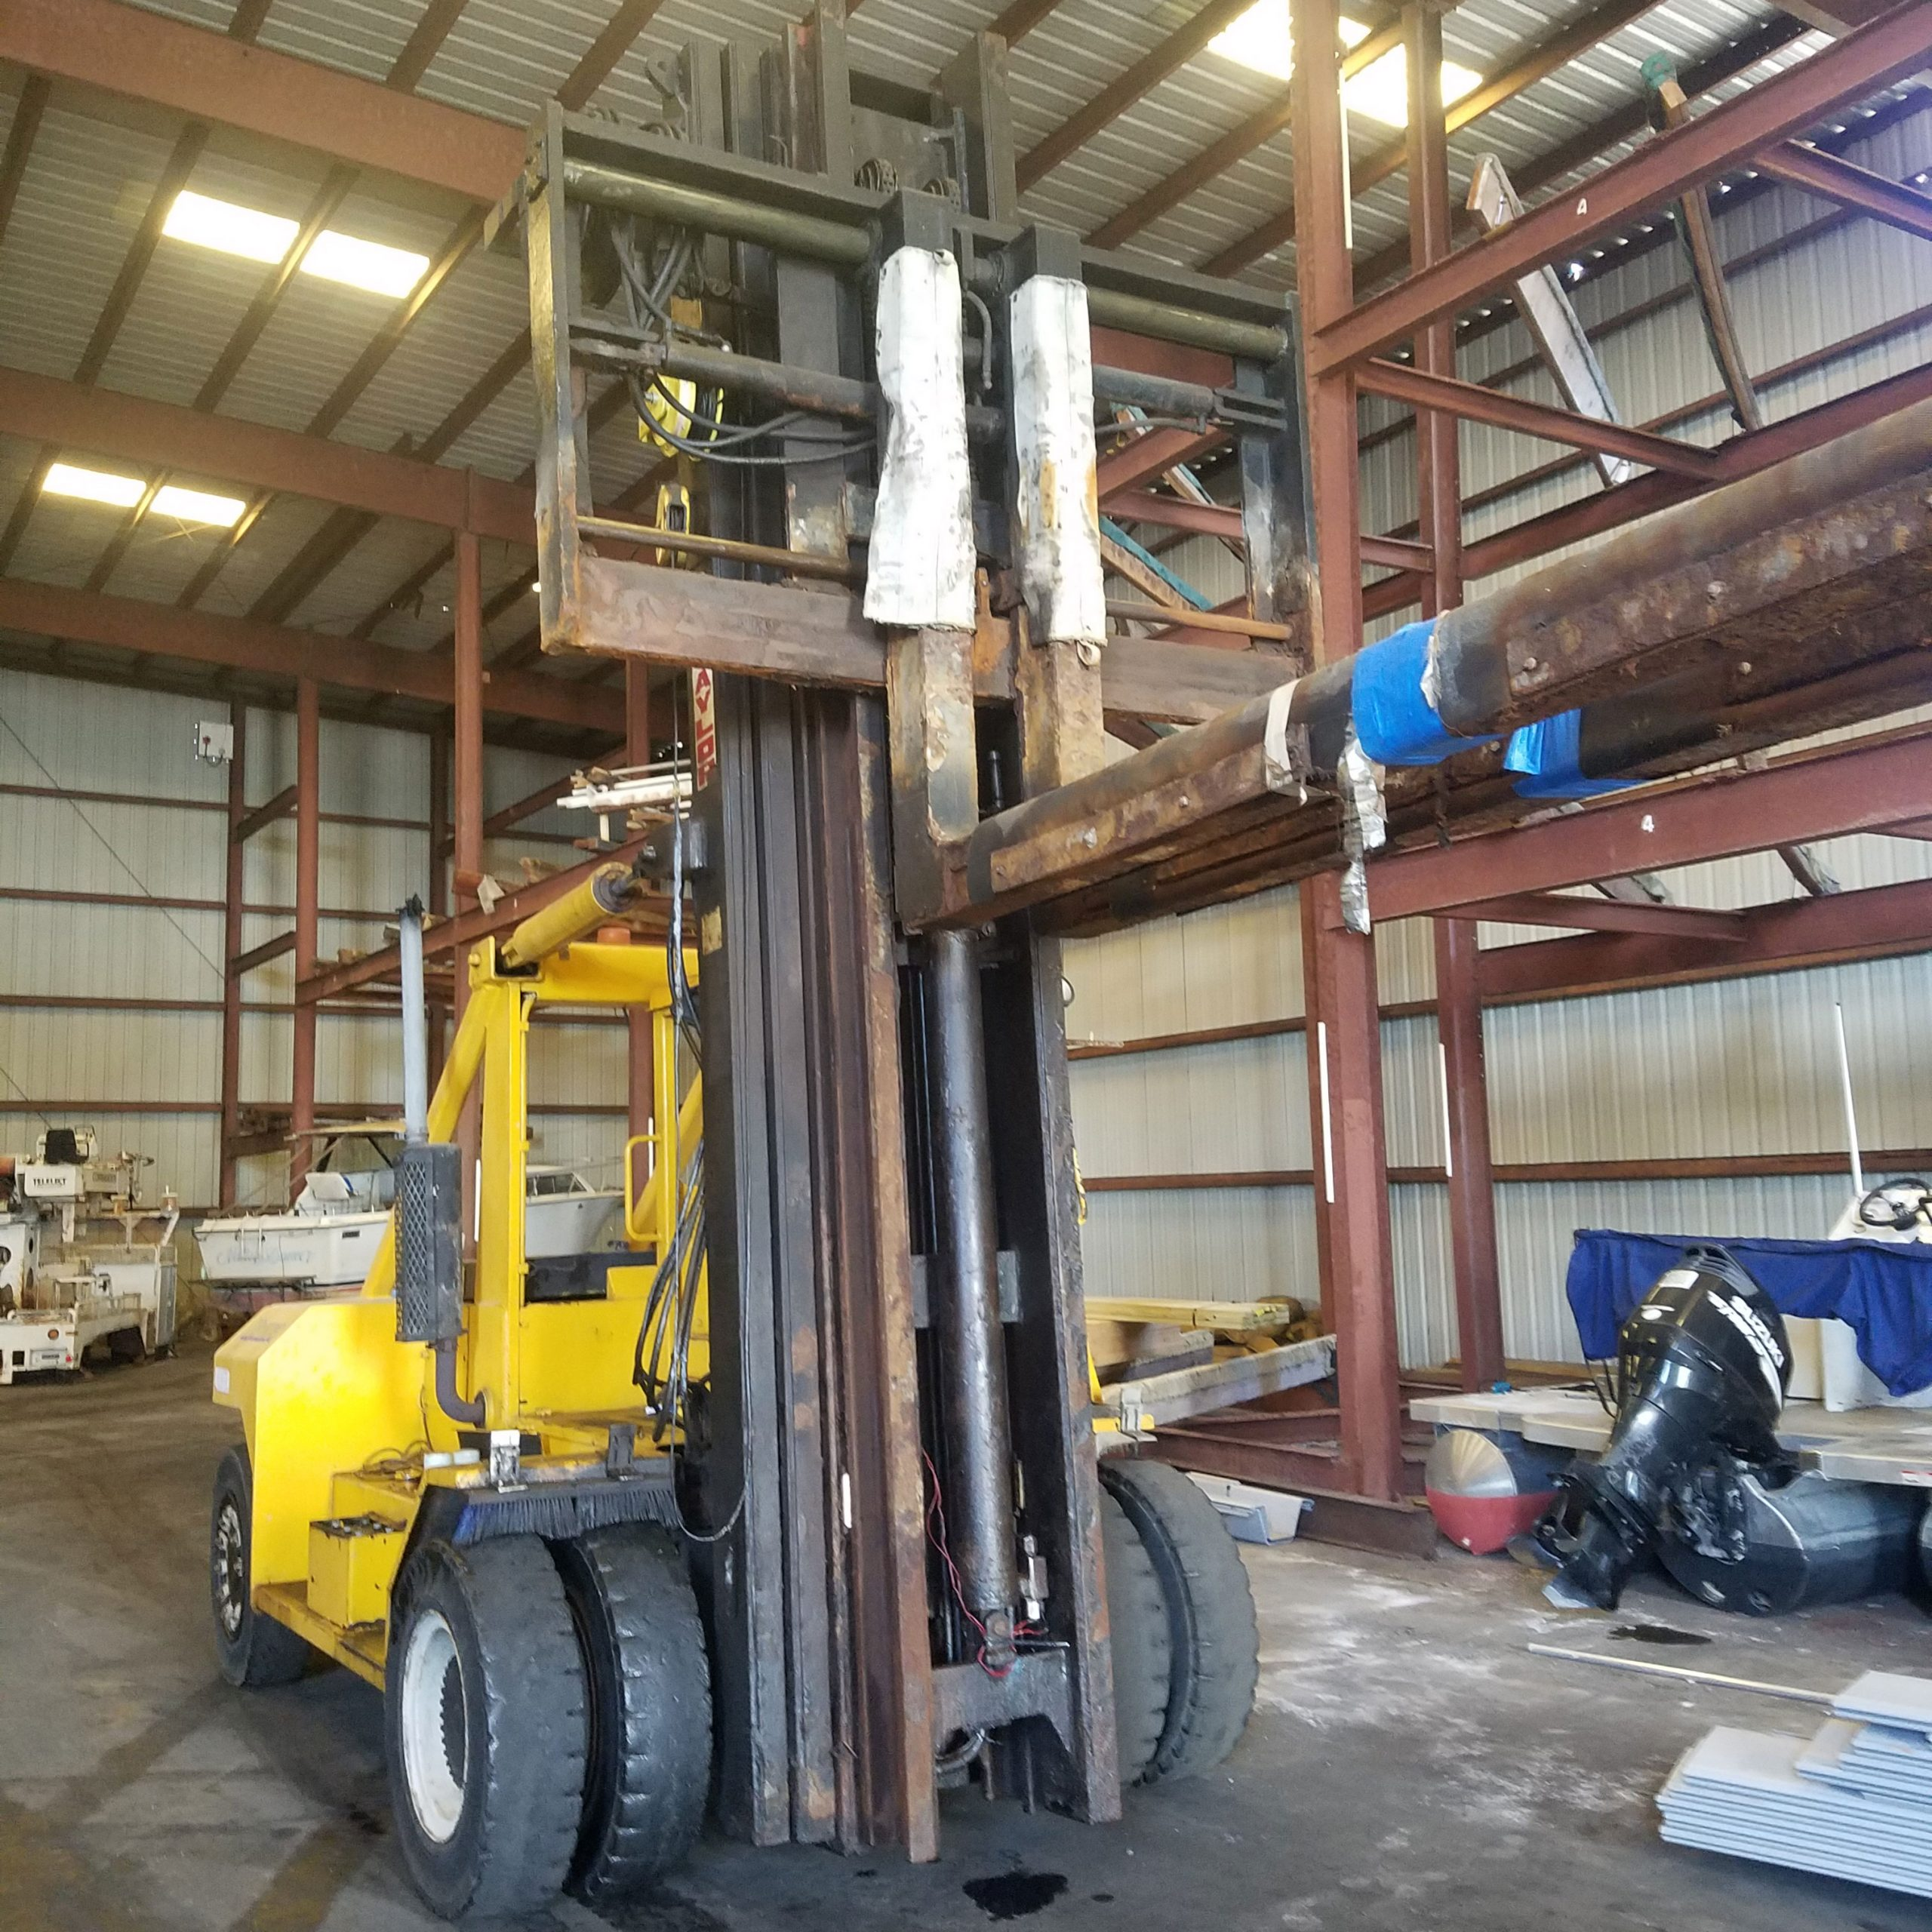 Used 1993 Taylor 4-stage forklift for sale in Florida.